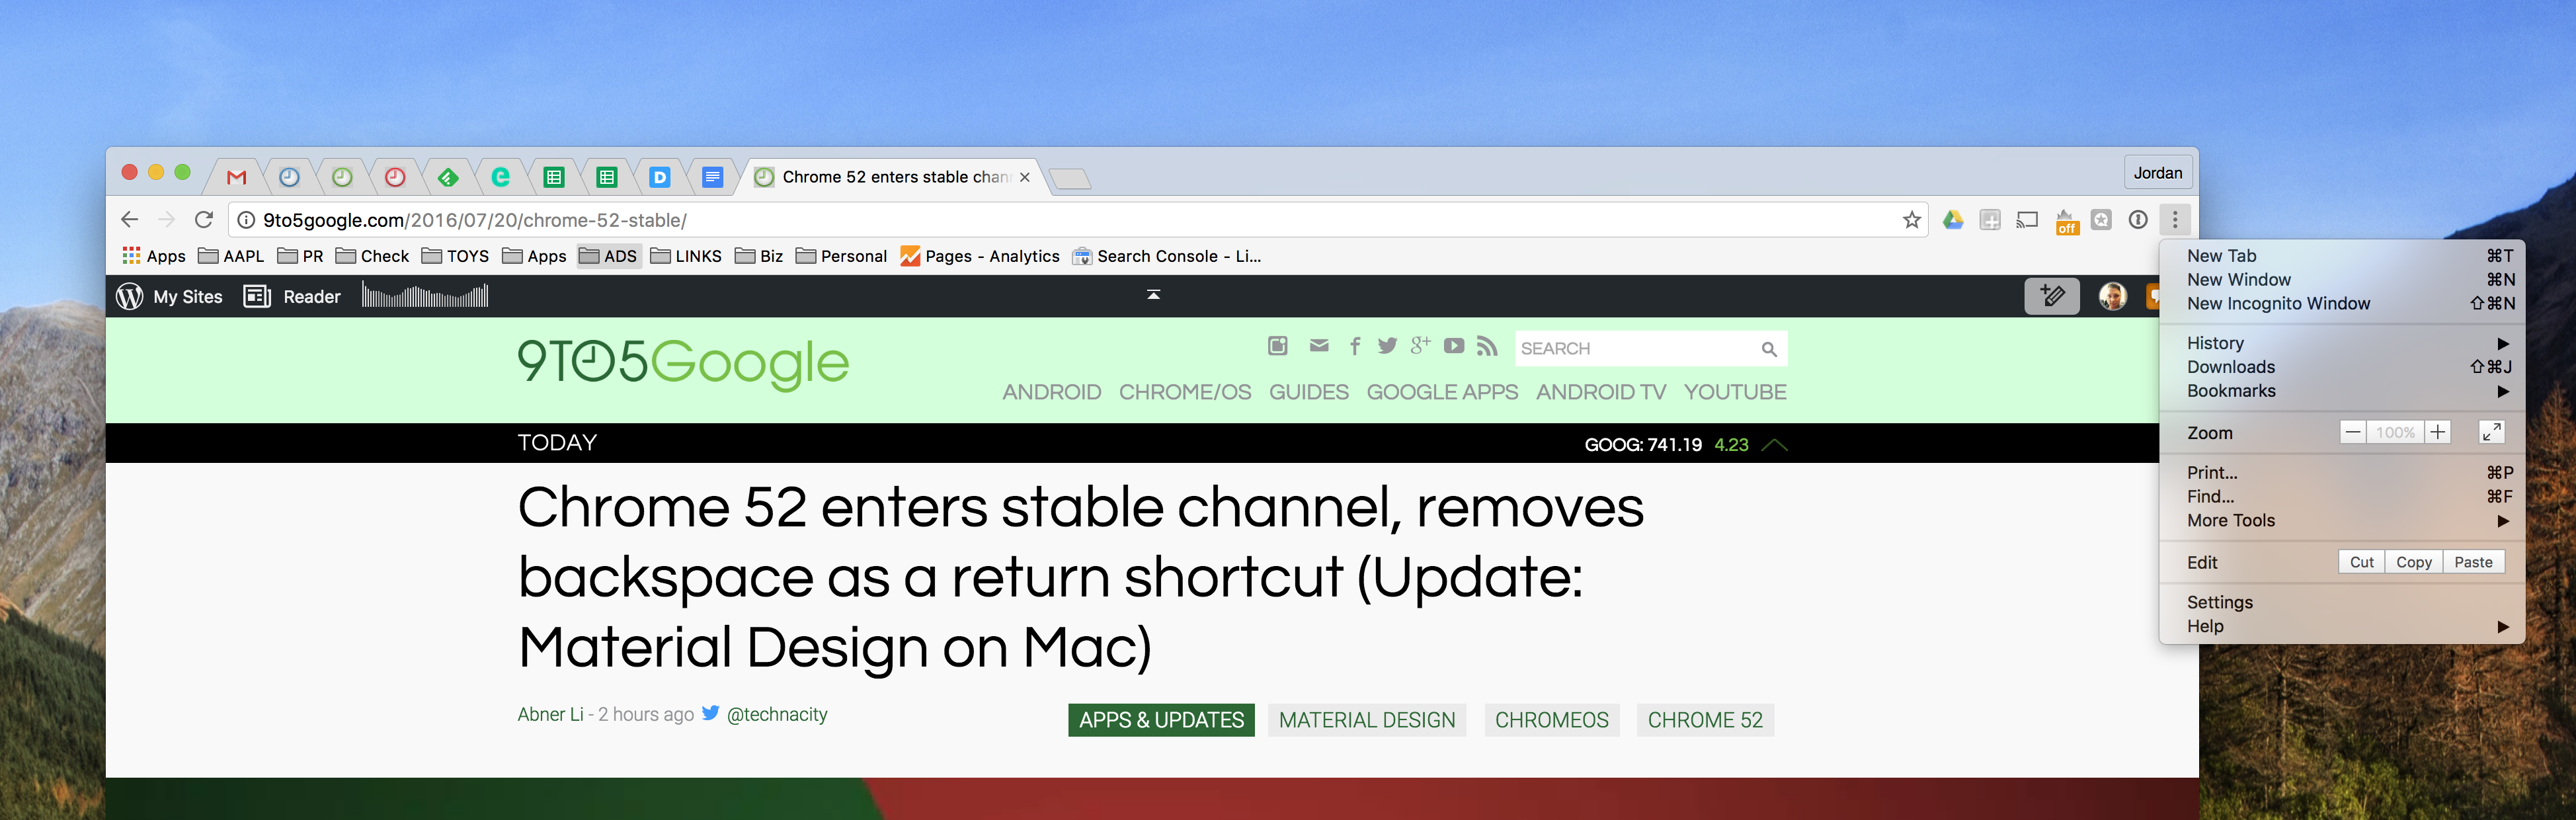 Chrome-52-Material-Design-Mac-02